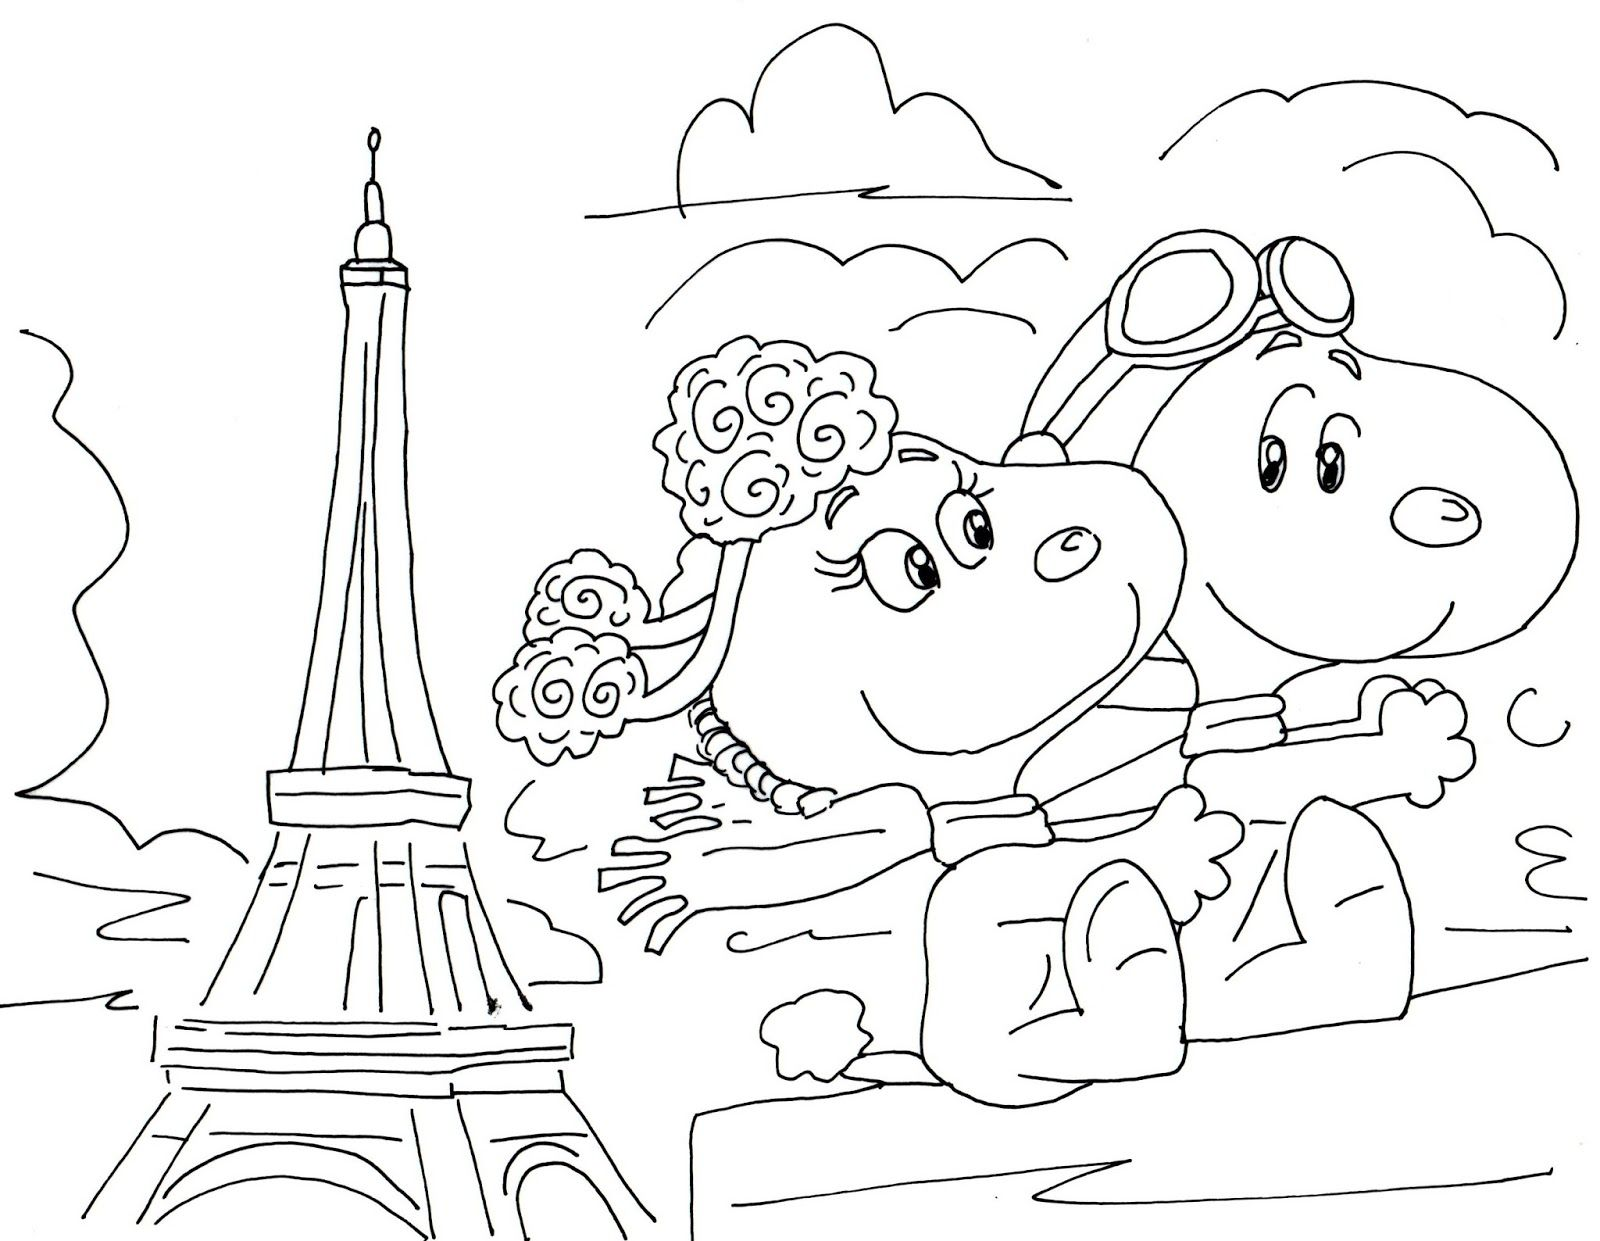 Lil 80s B B Cute Coloring Pages Coloring Pages Cartoon